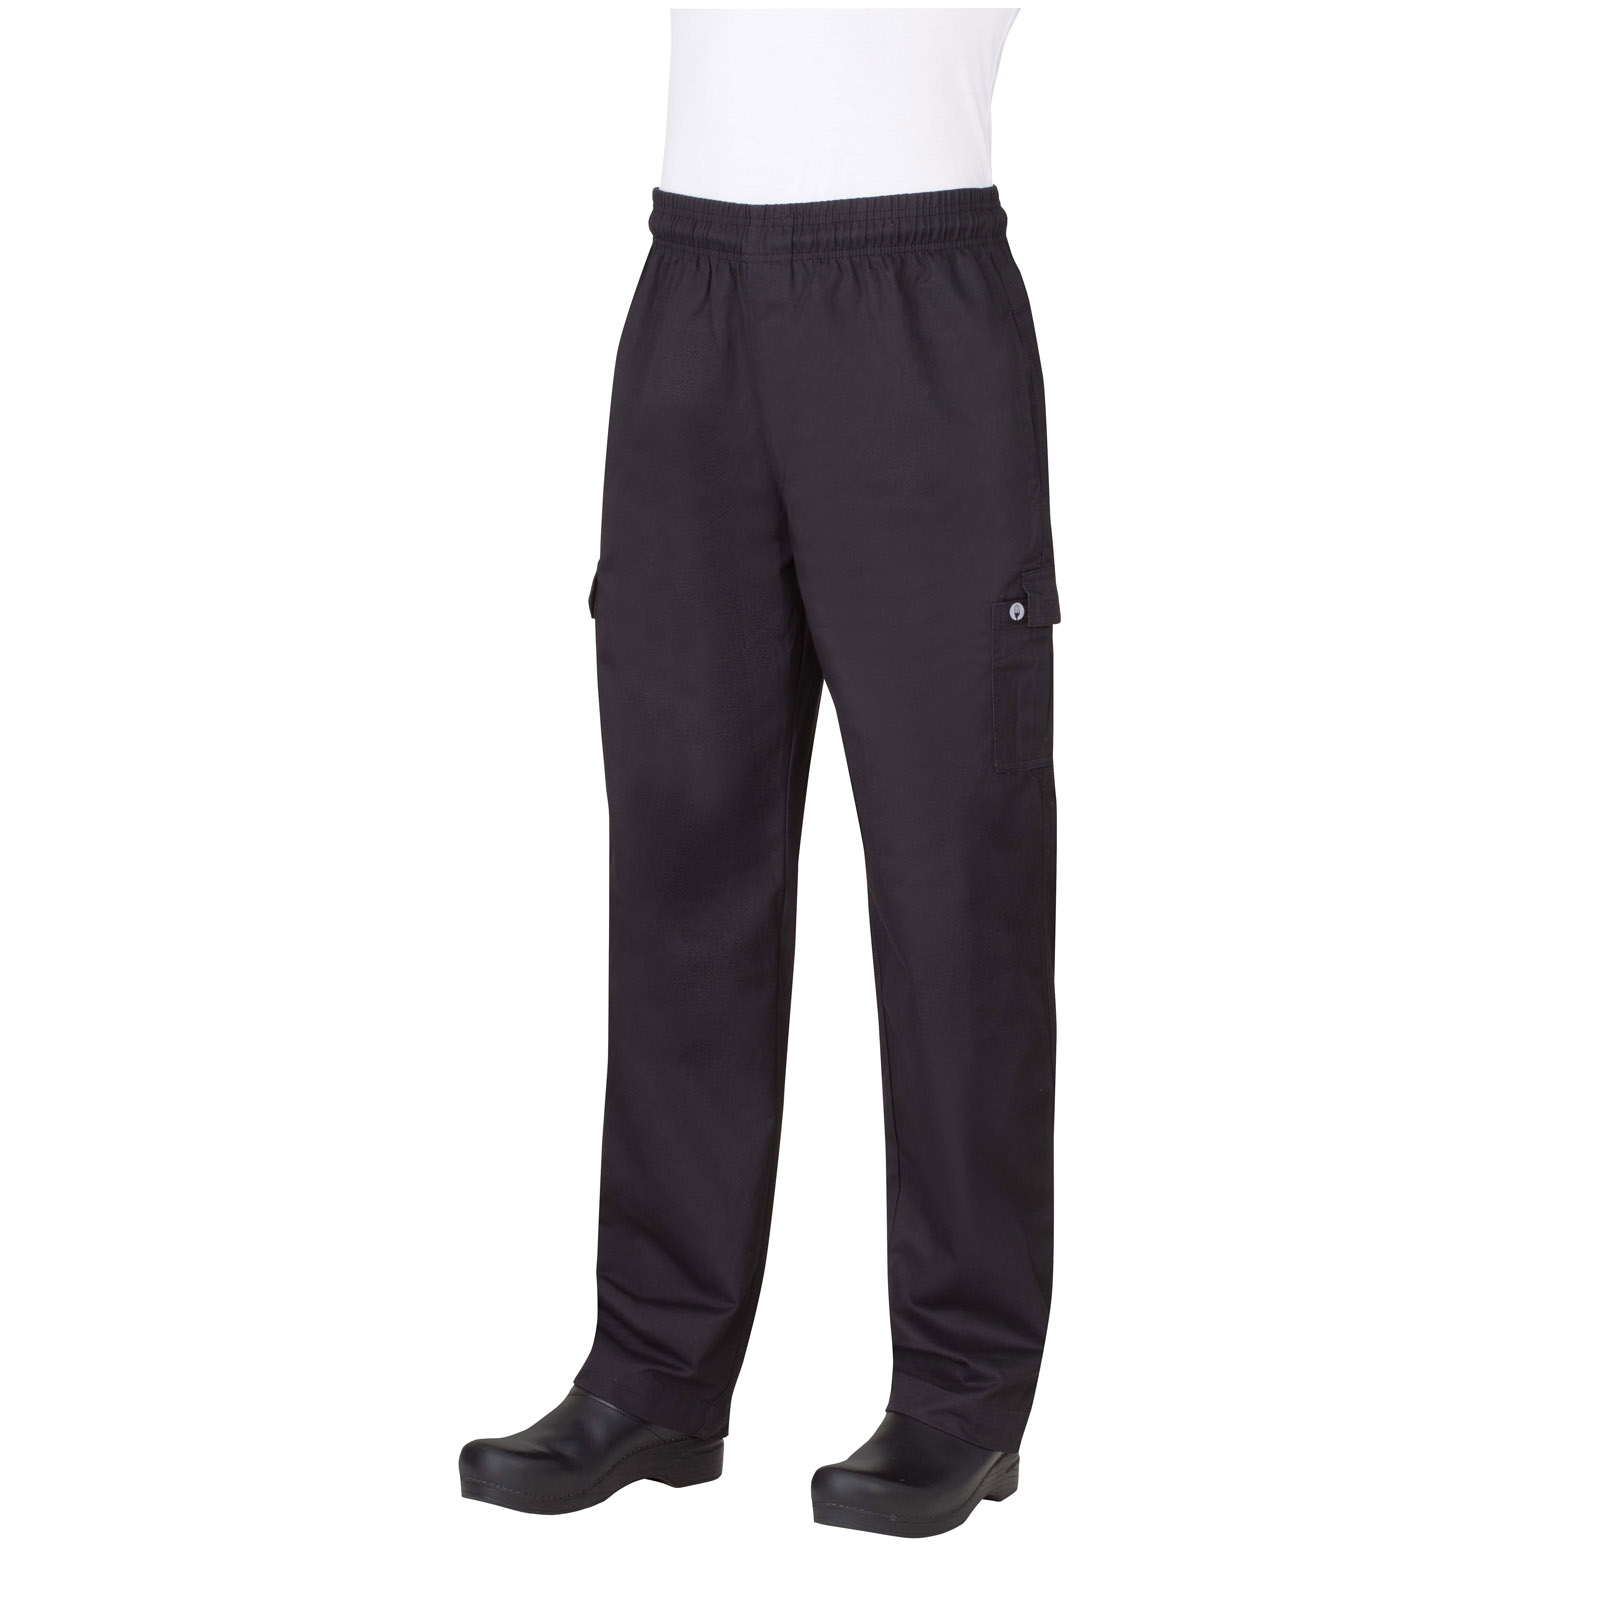 Chef Works PC001BLK4XL chef's pants